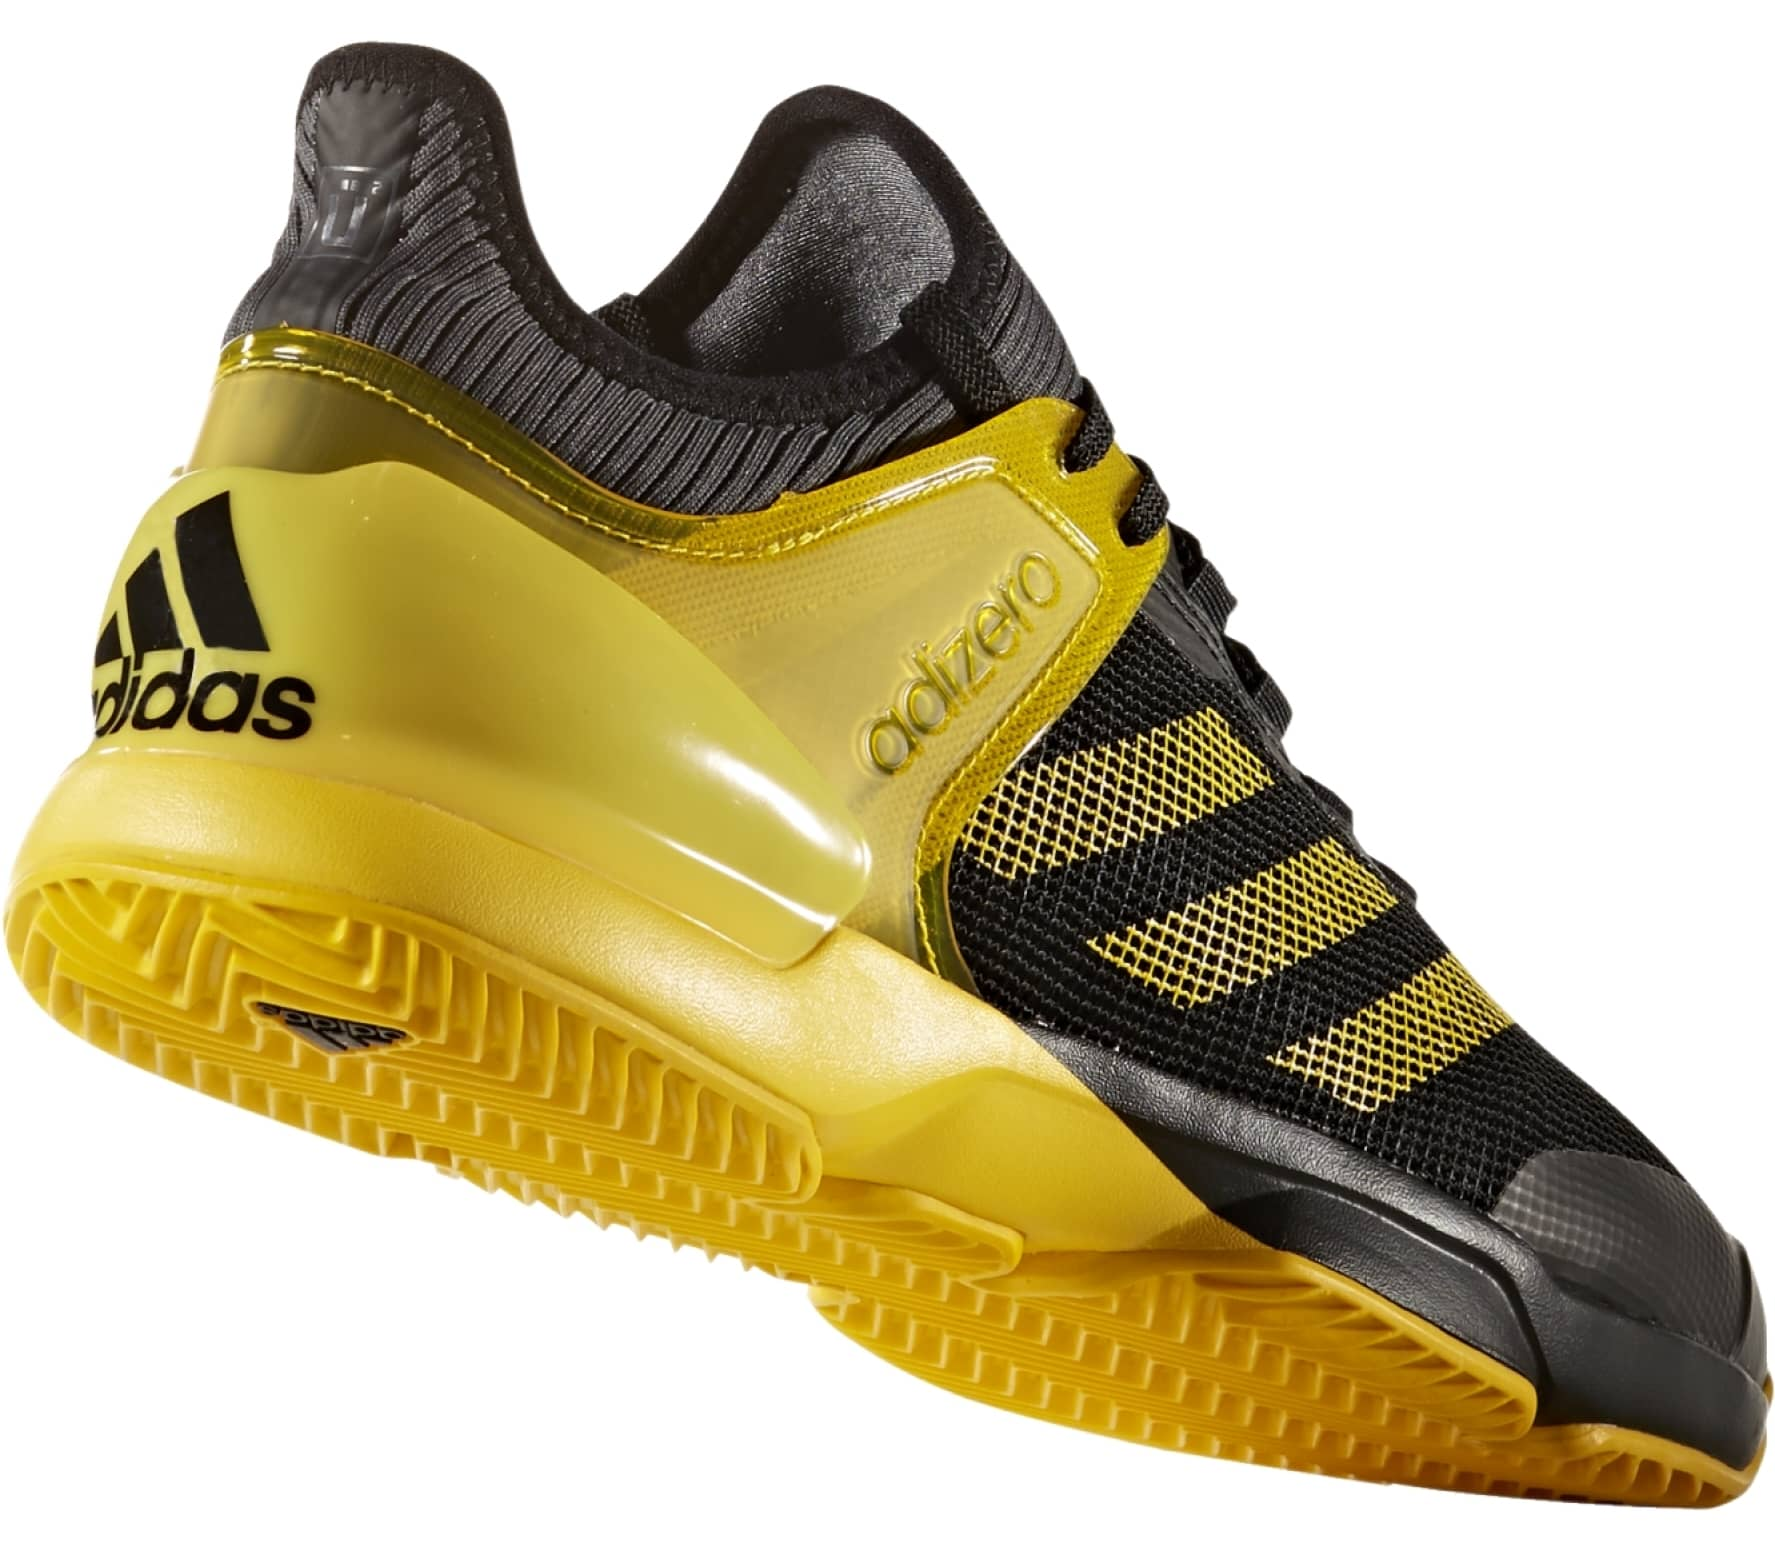 purchase cheap 41d0e 60bf6 Adidas - Adizero Ubersonic 2 Clay mens tennis shoes (blackyellow)